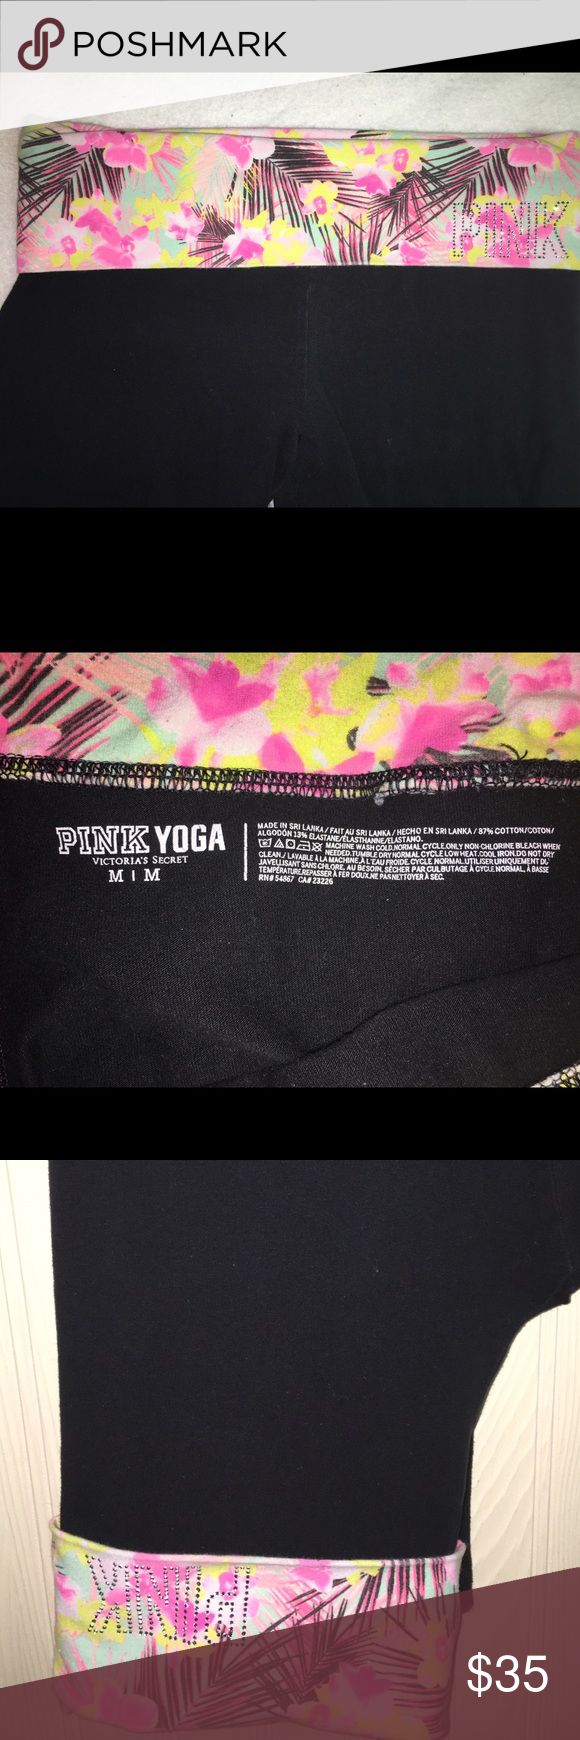 "Pink VS yoga leggings Excellent condition Pink VS leggings!  Tropical print slip over with blinged out ""pink"".  Throw these on, light the tiki torches, and sip on a fruity adult beverage in your back yard!  It's almost exactly like being in Hawaii!  🏝 included in the bundle but will sell separately. However check out the bundle for a great deal!! PINK Victoria's Secret Pants Leggings"